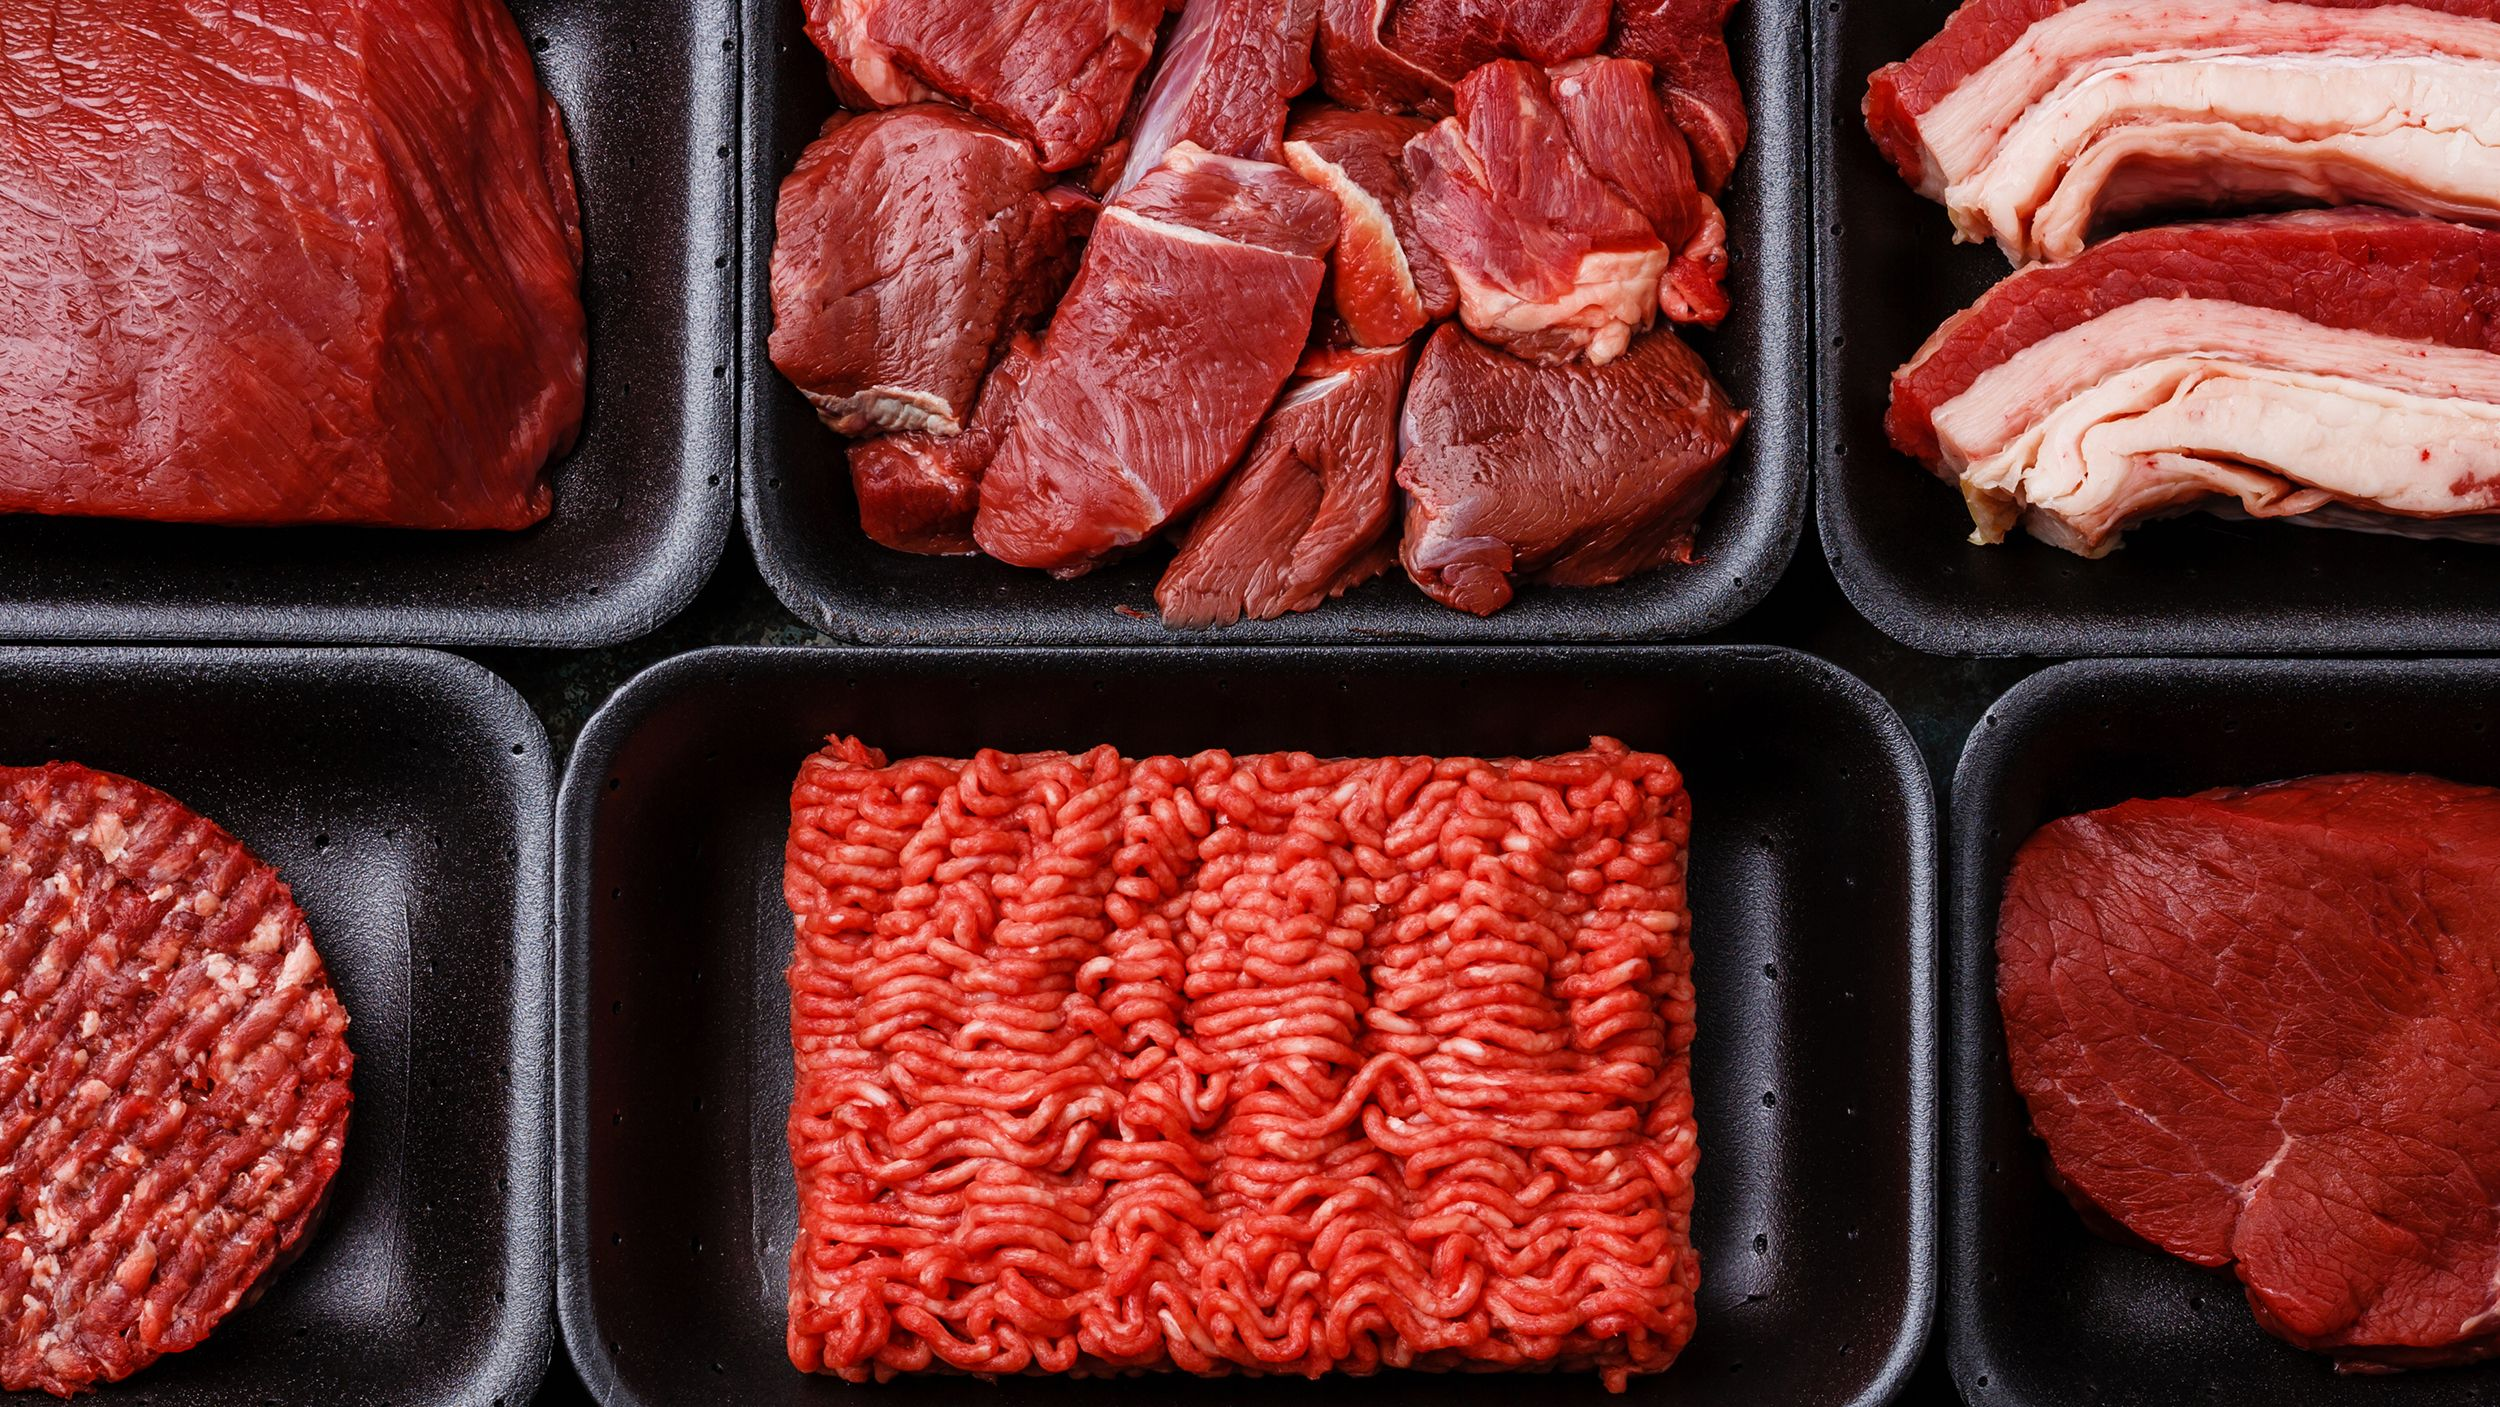 Has your meat gone bad? Here's how to tell Healthy foods